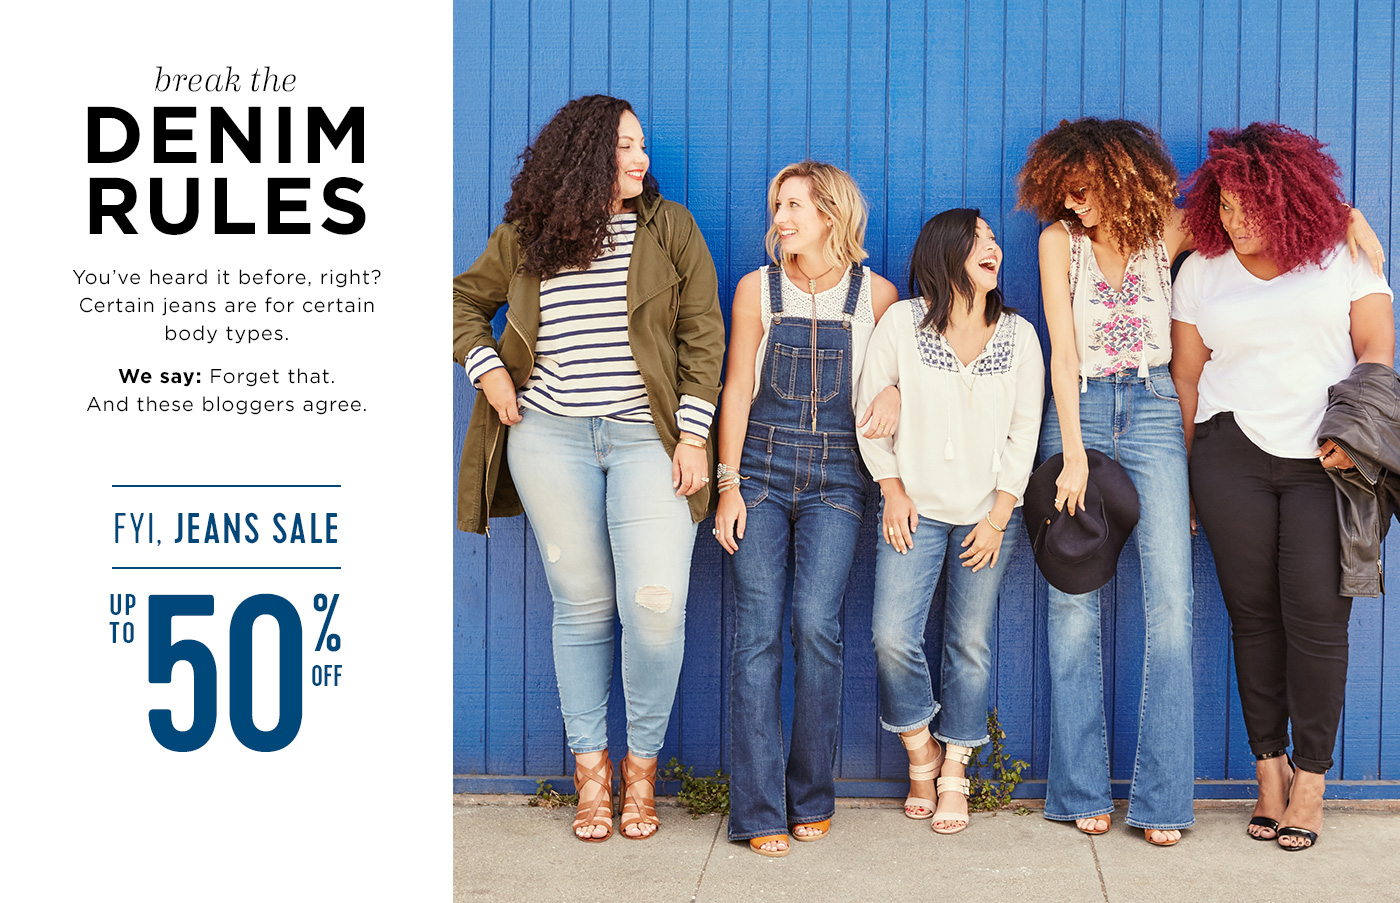 Clothing stores like old navy